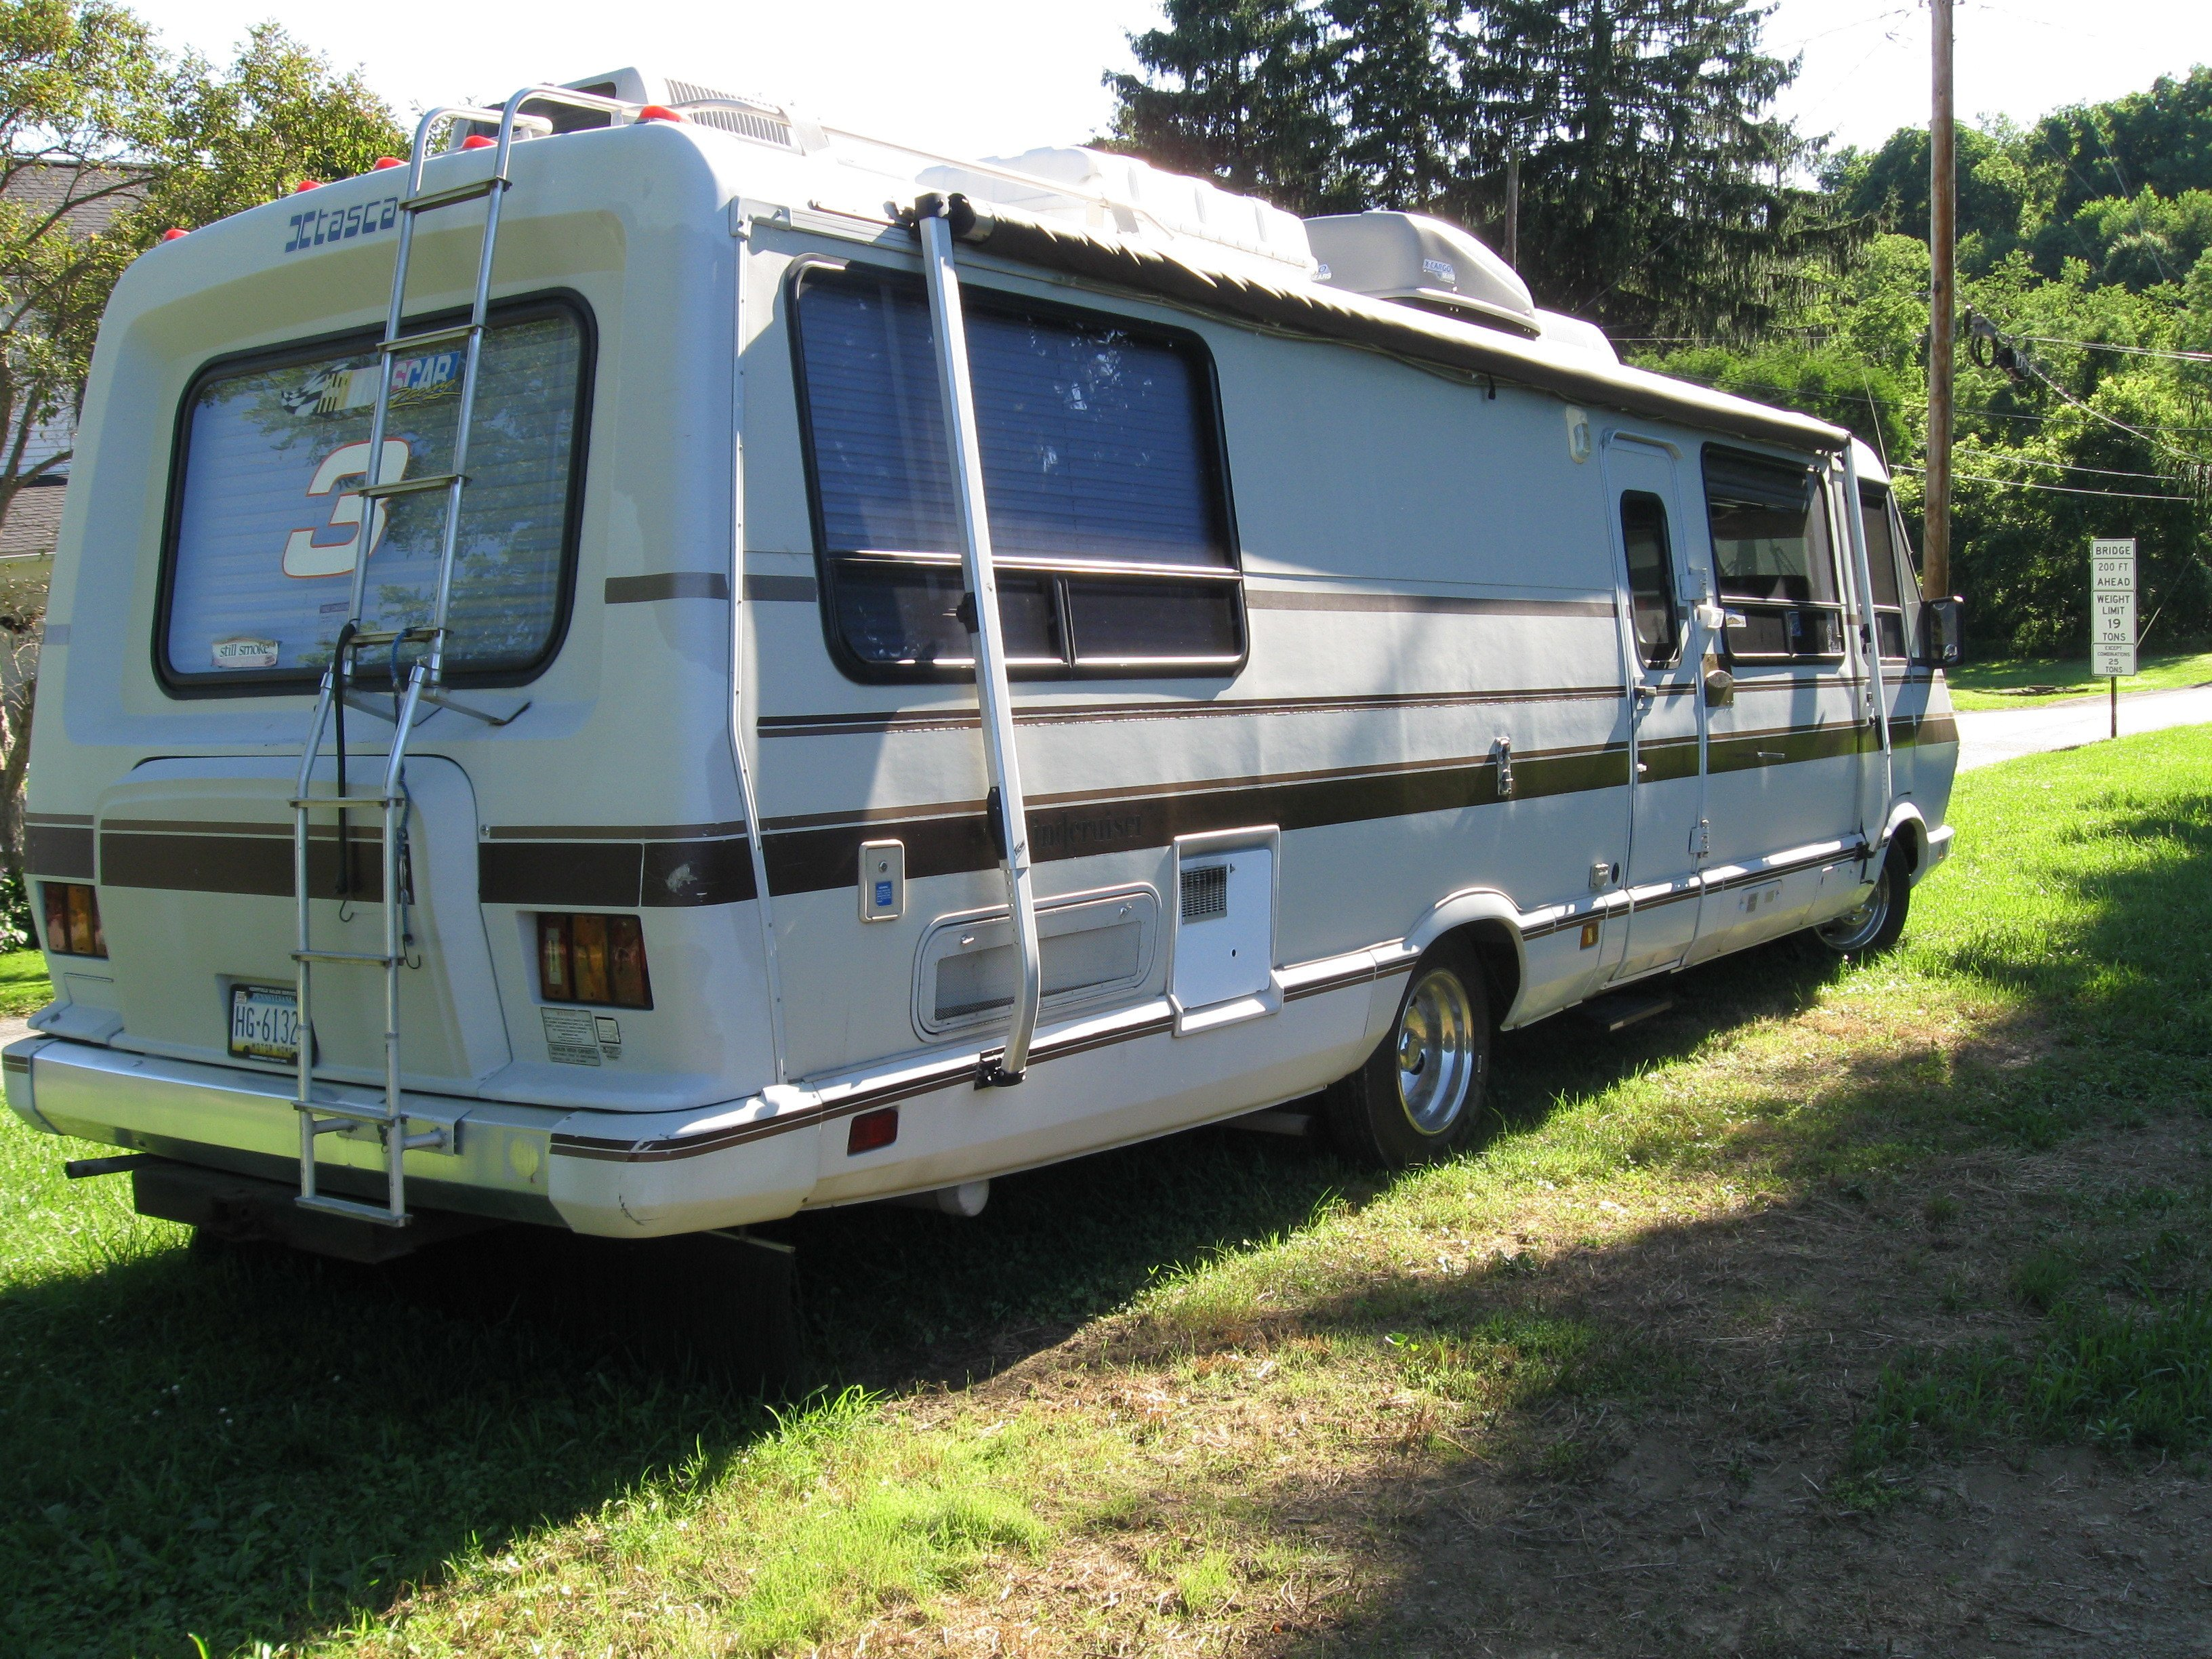 1987 Tiffin Allegro Motorhome Wiring Diagram Winnebago Other Models For Sale Near Greensburg 1280x720